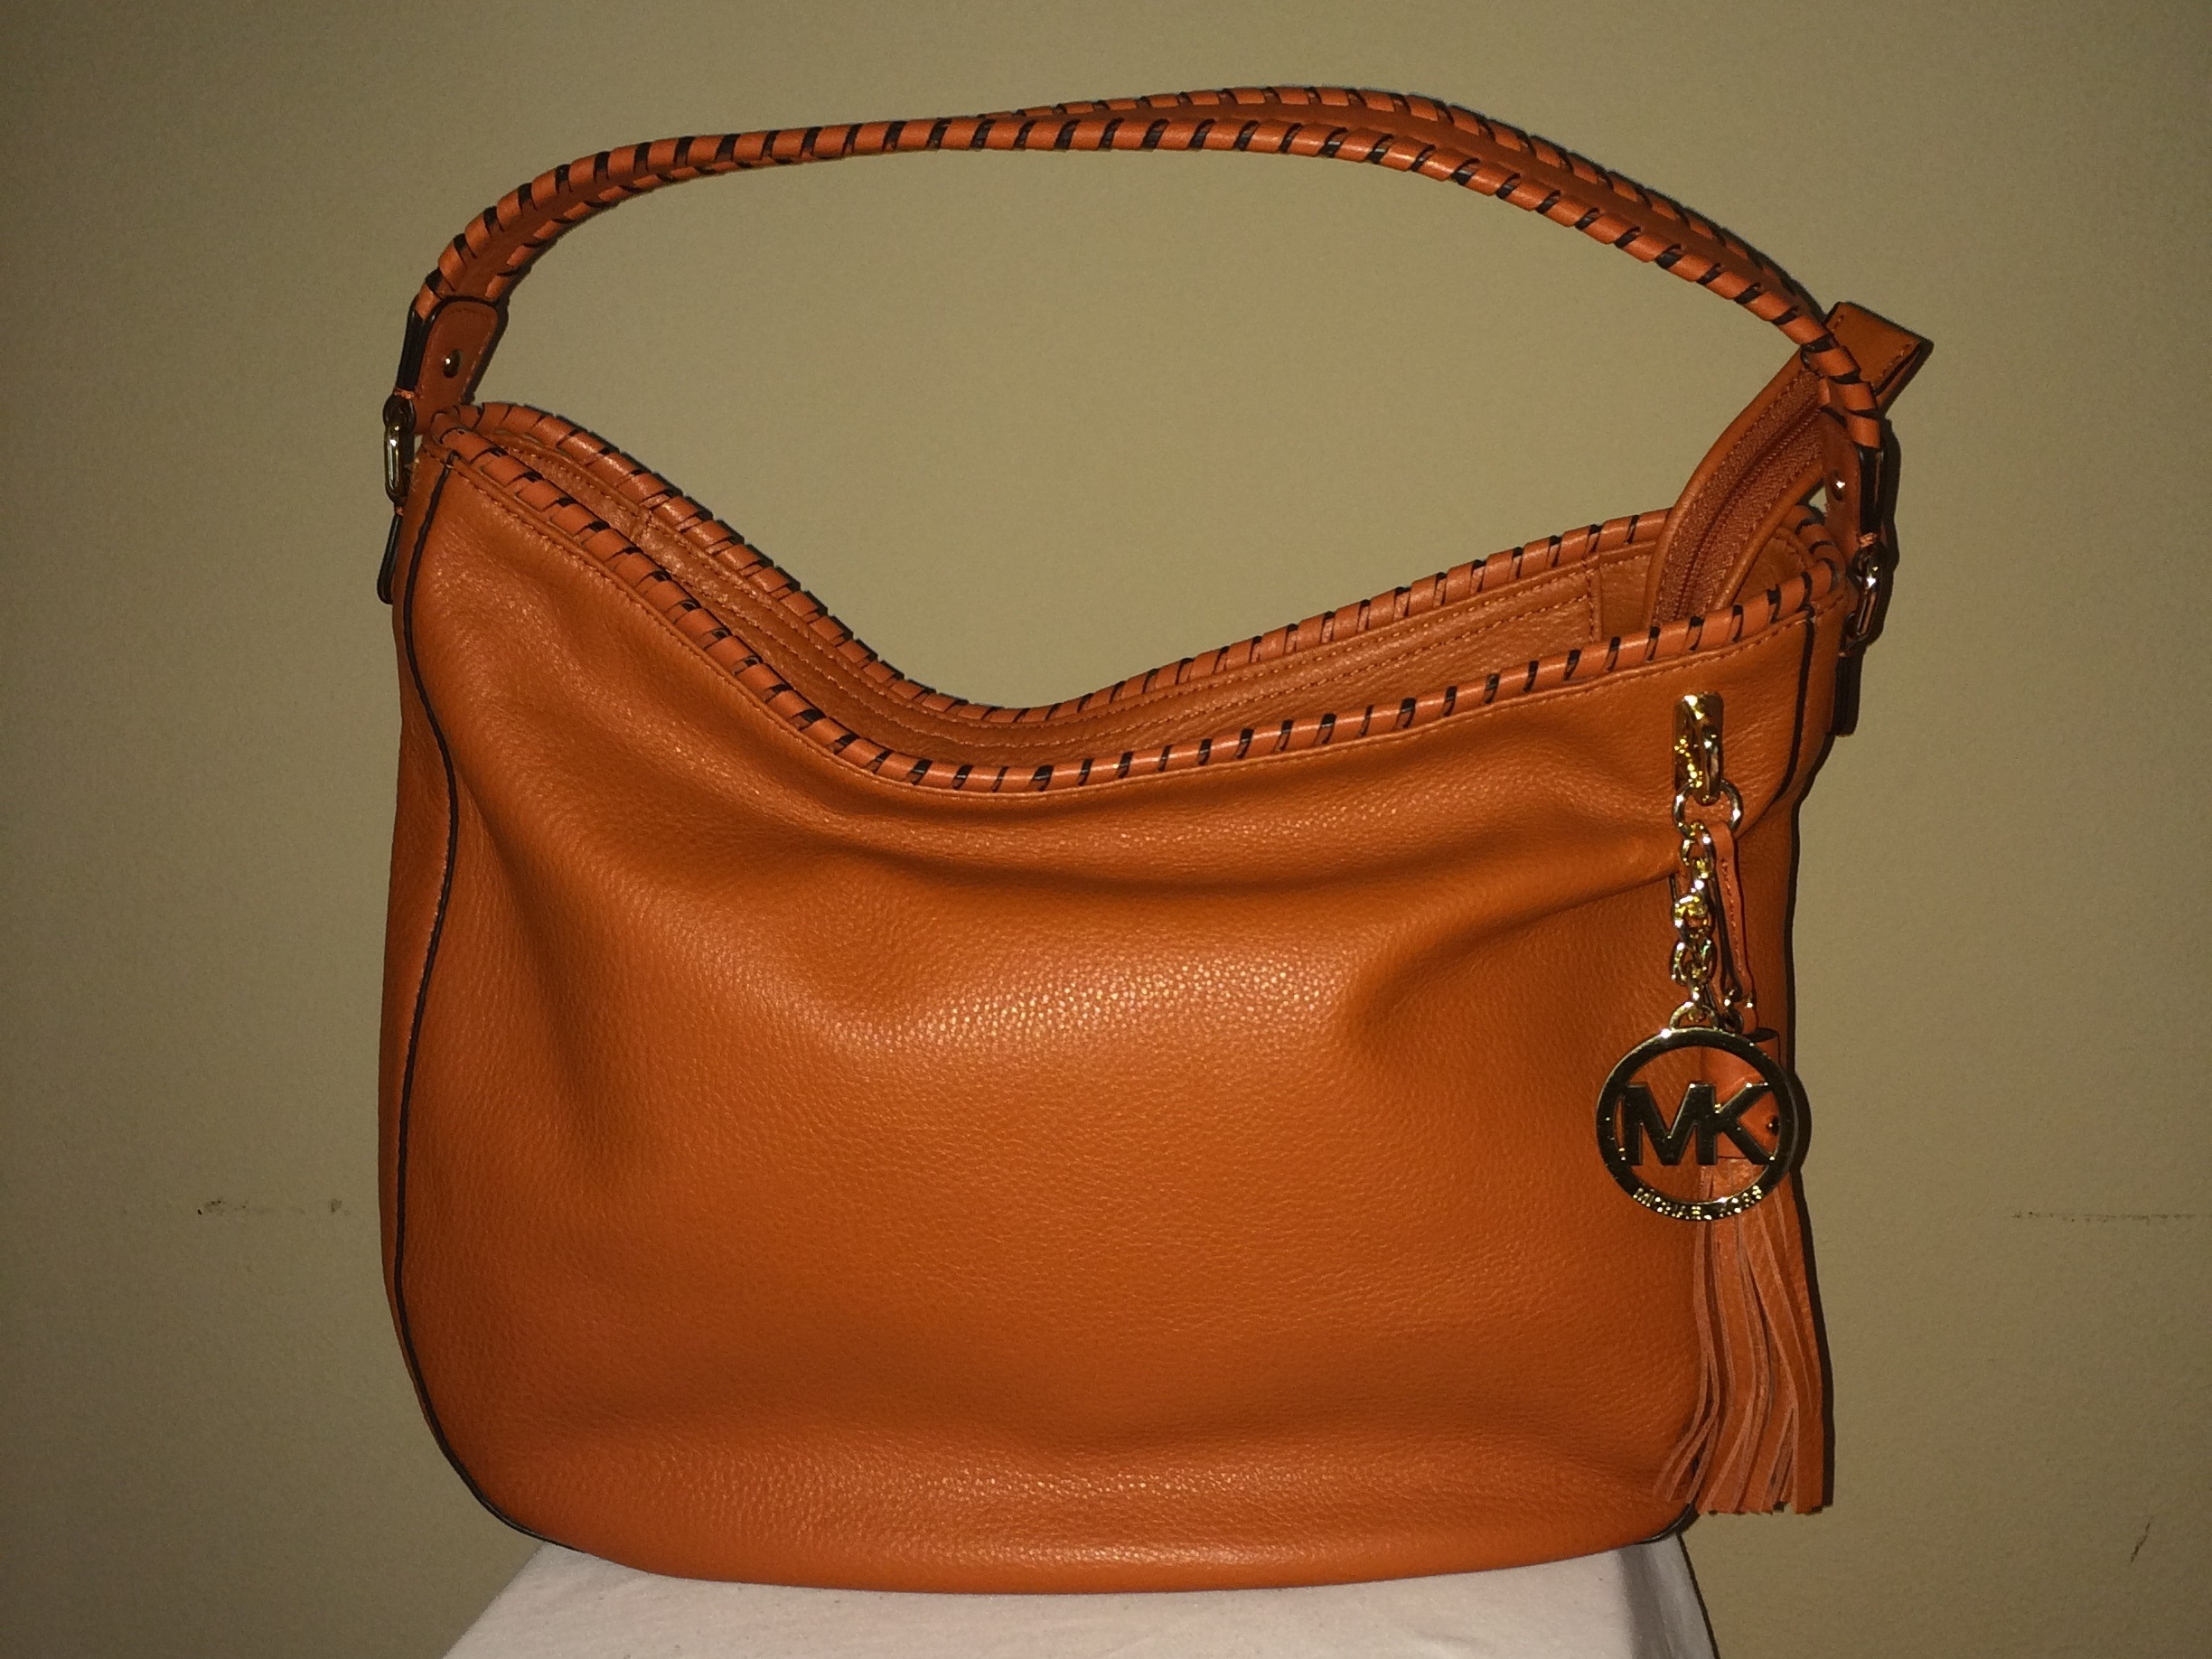 Coral Michael Kors - front